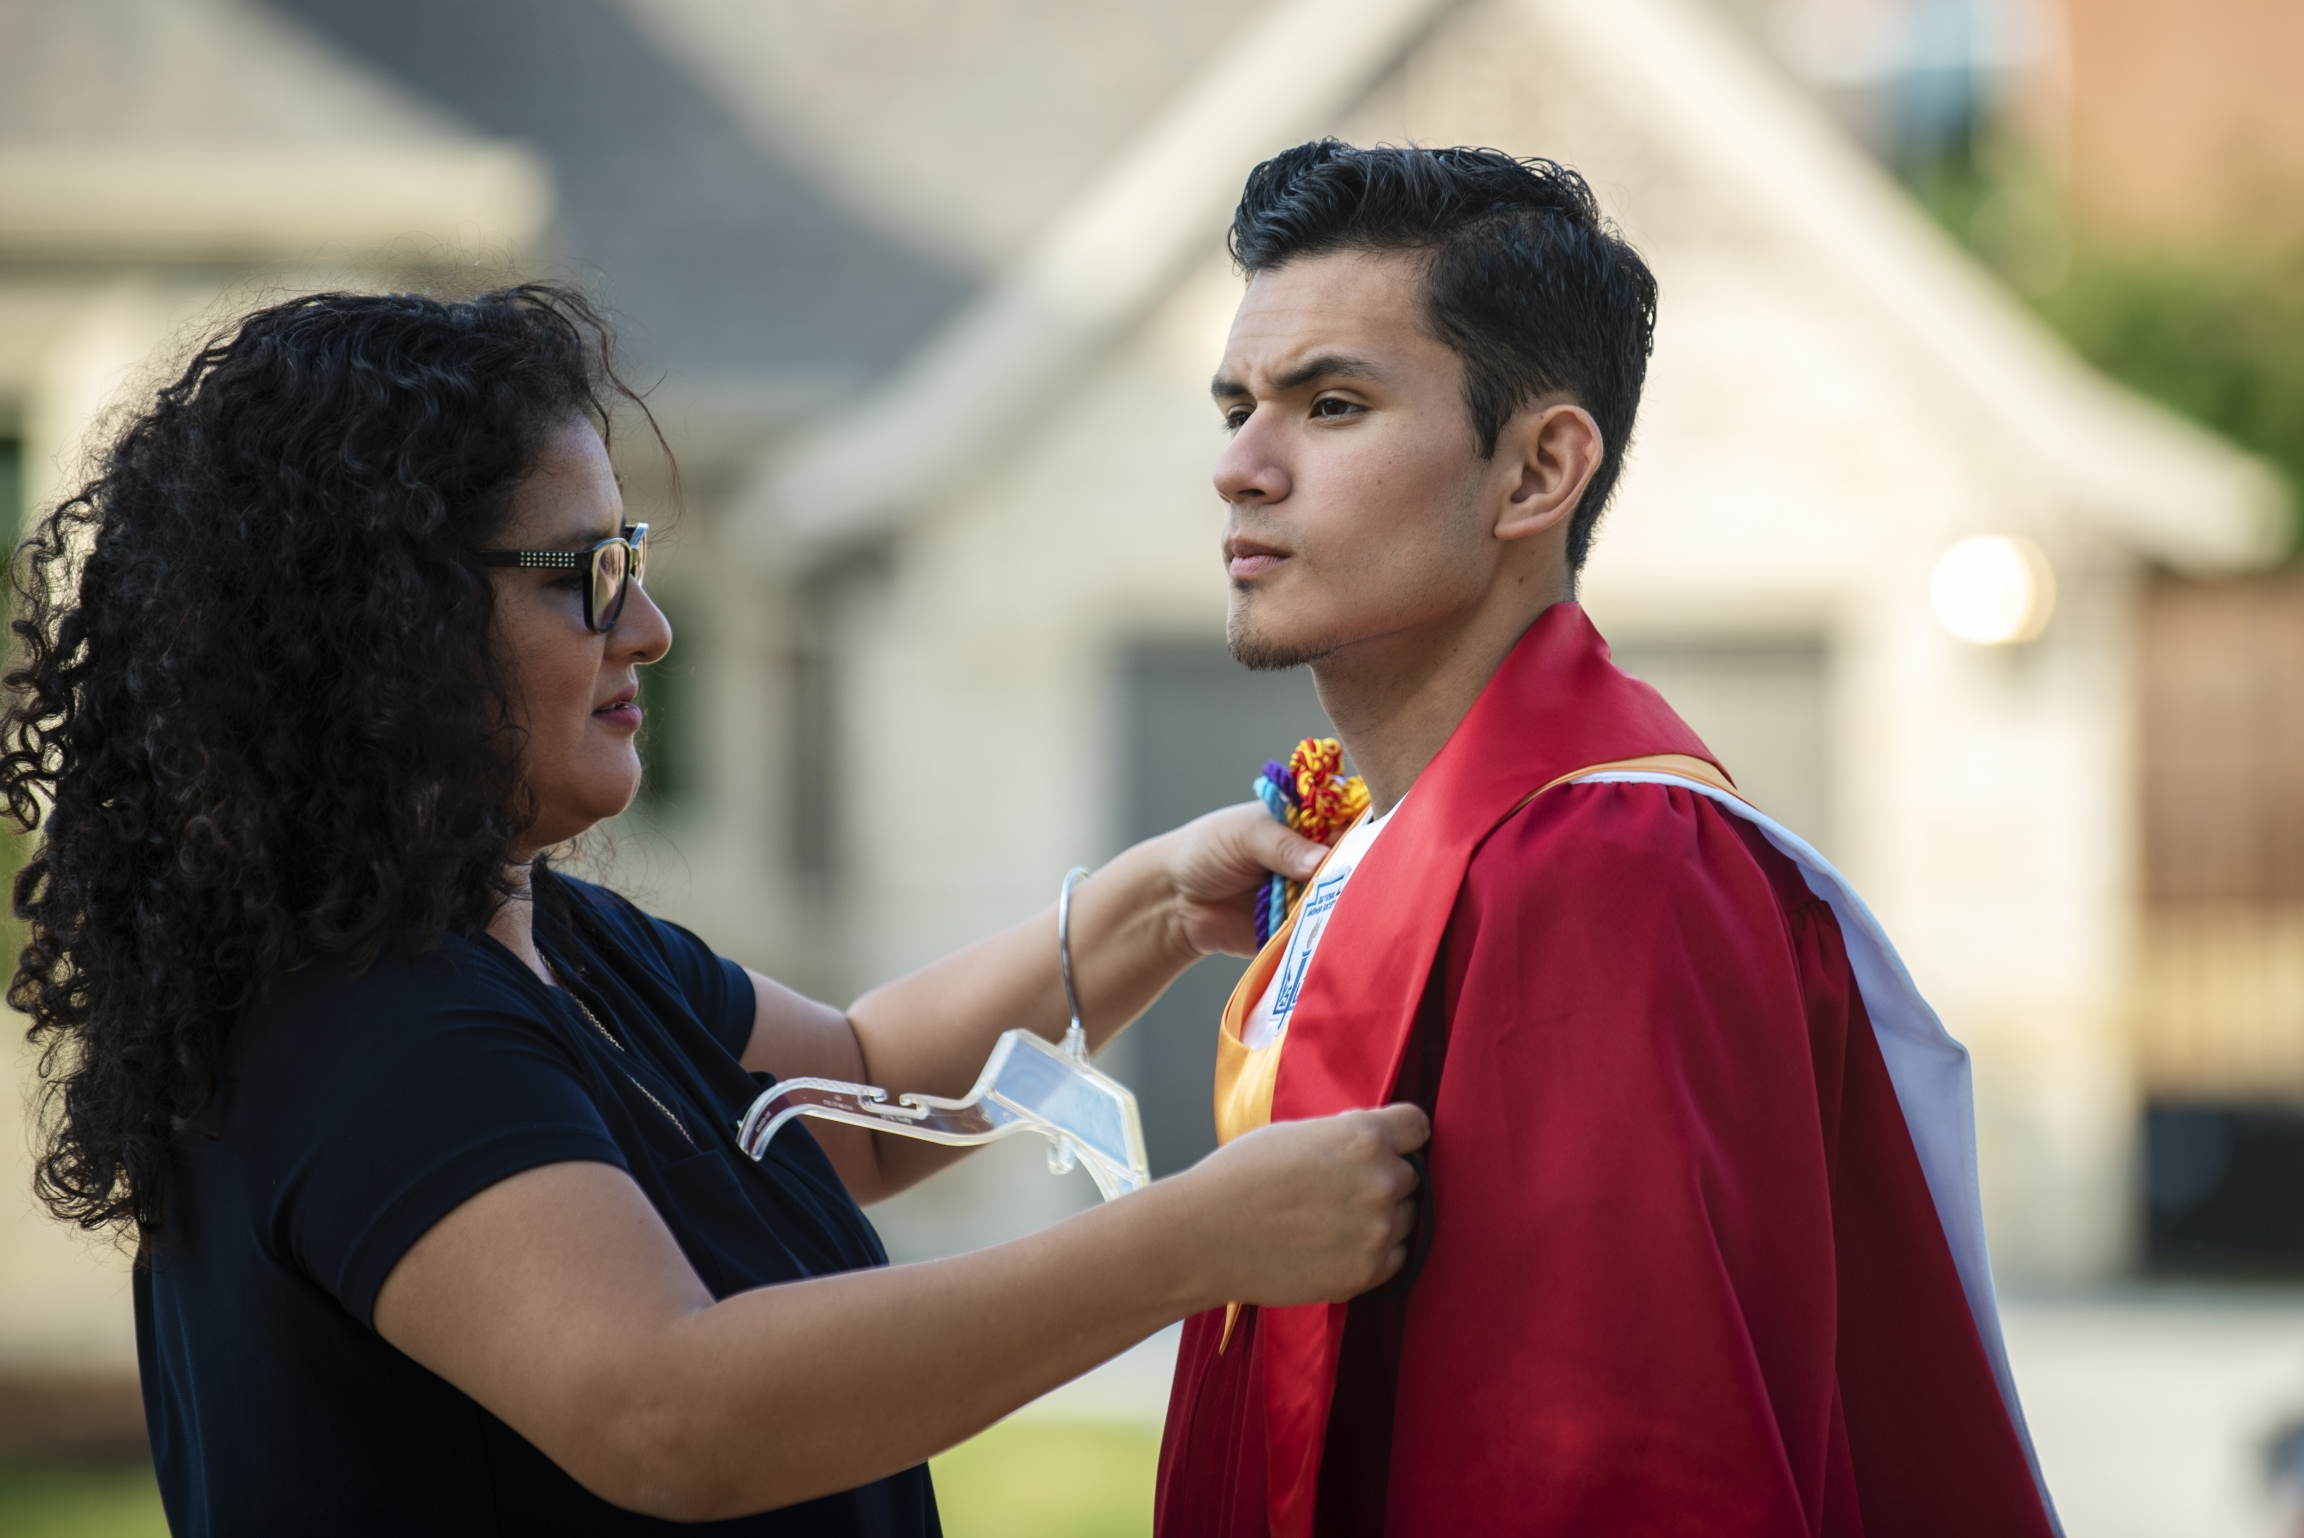 Xochitl Ortiz, left, helps her son Izcan Ordaz to try on his graduation gown outside their home in Keller, Texas, May 28, 2020.